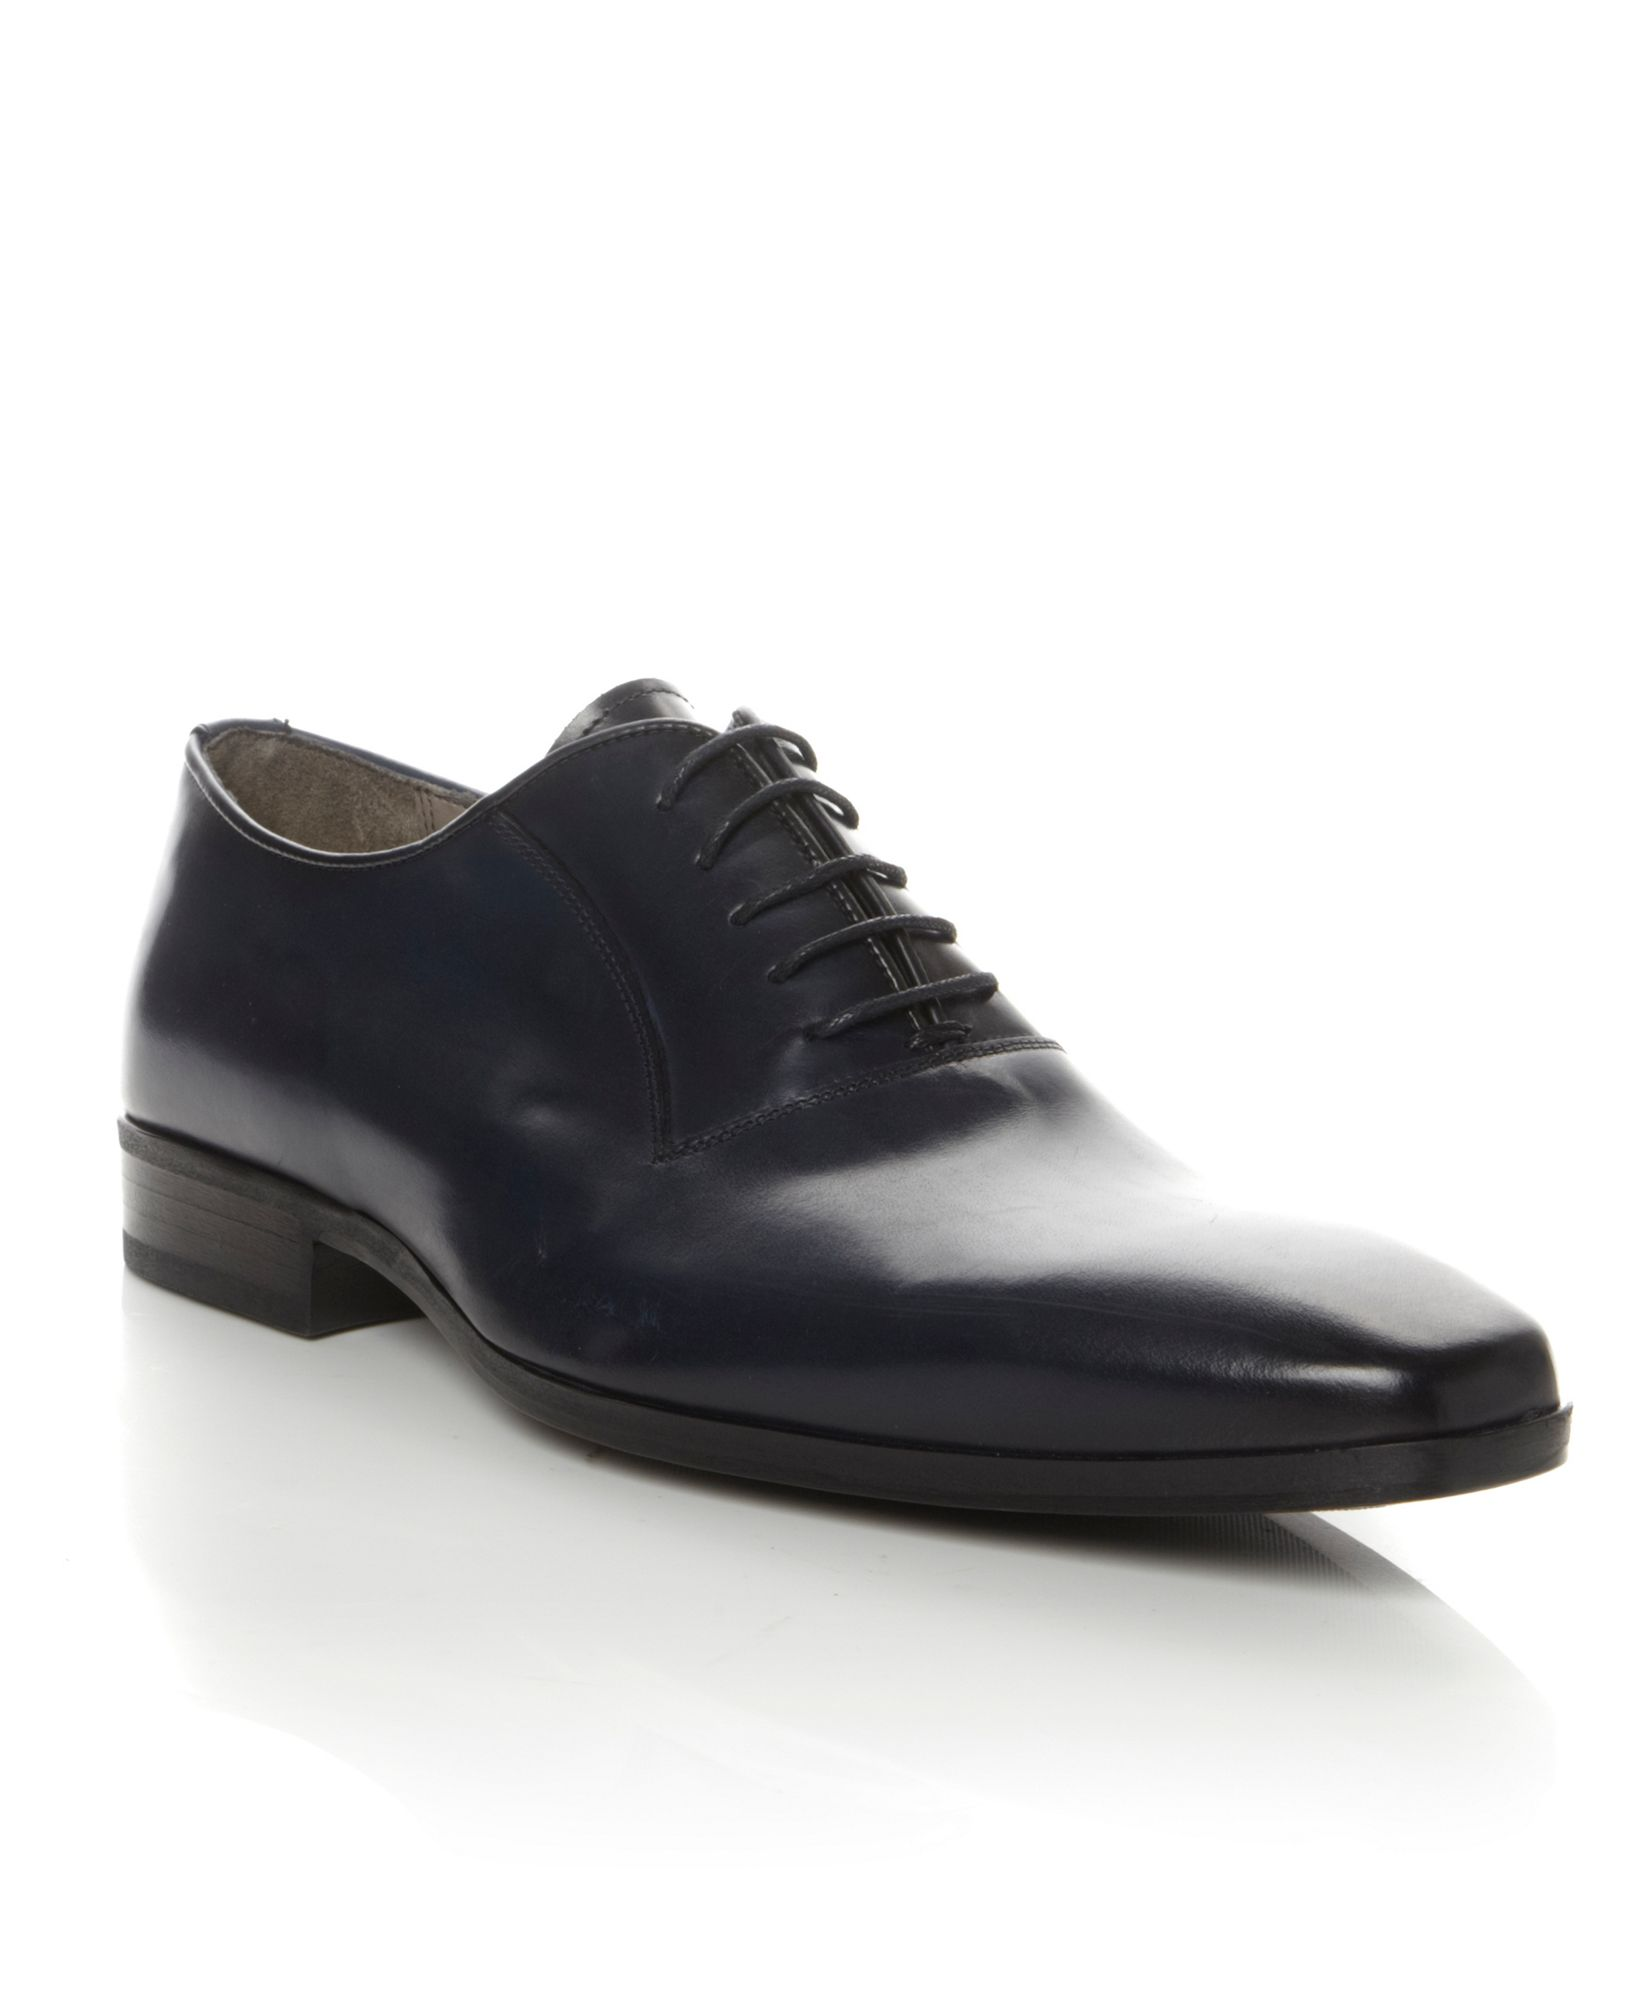 Pied A Terre Mens Shoes